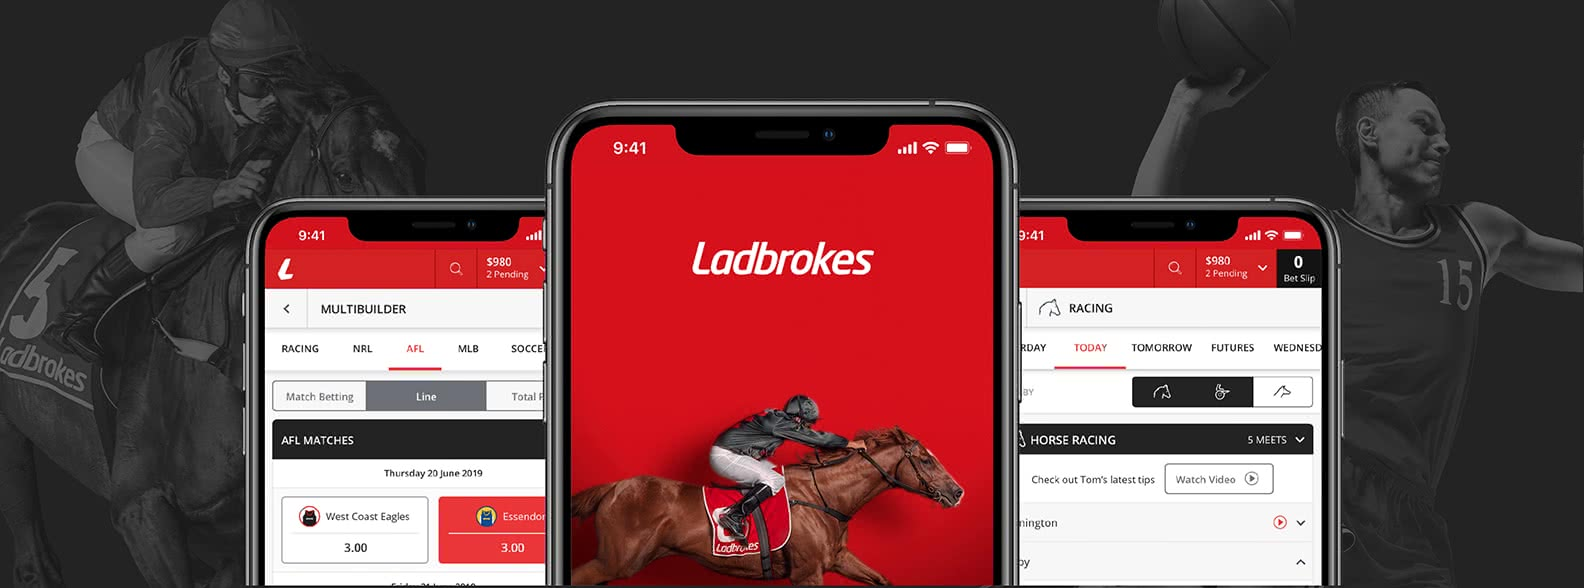 Ladbrokes betting applications rich manni motoring investments